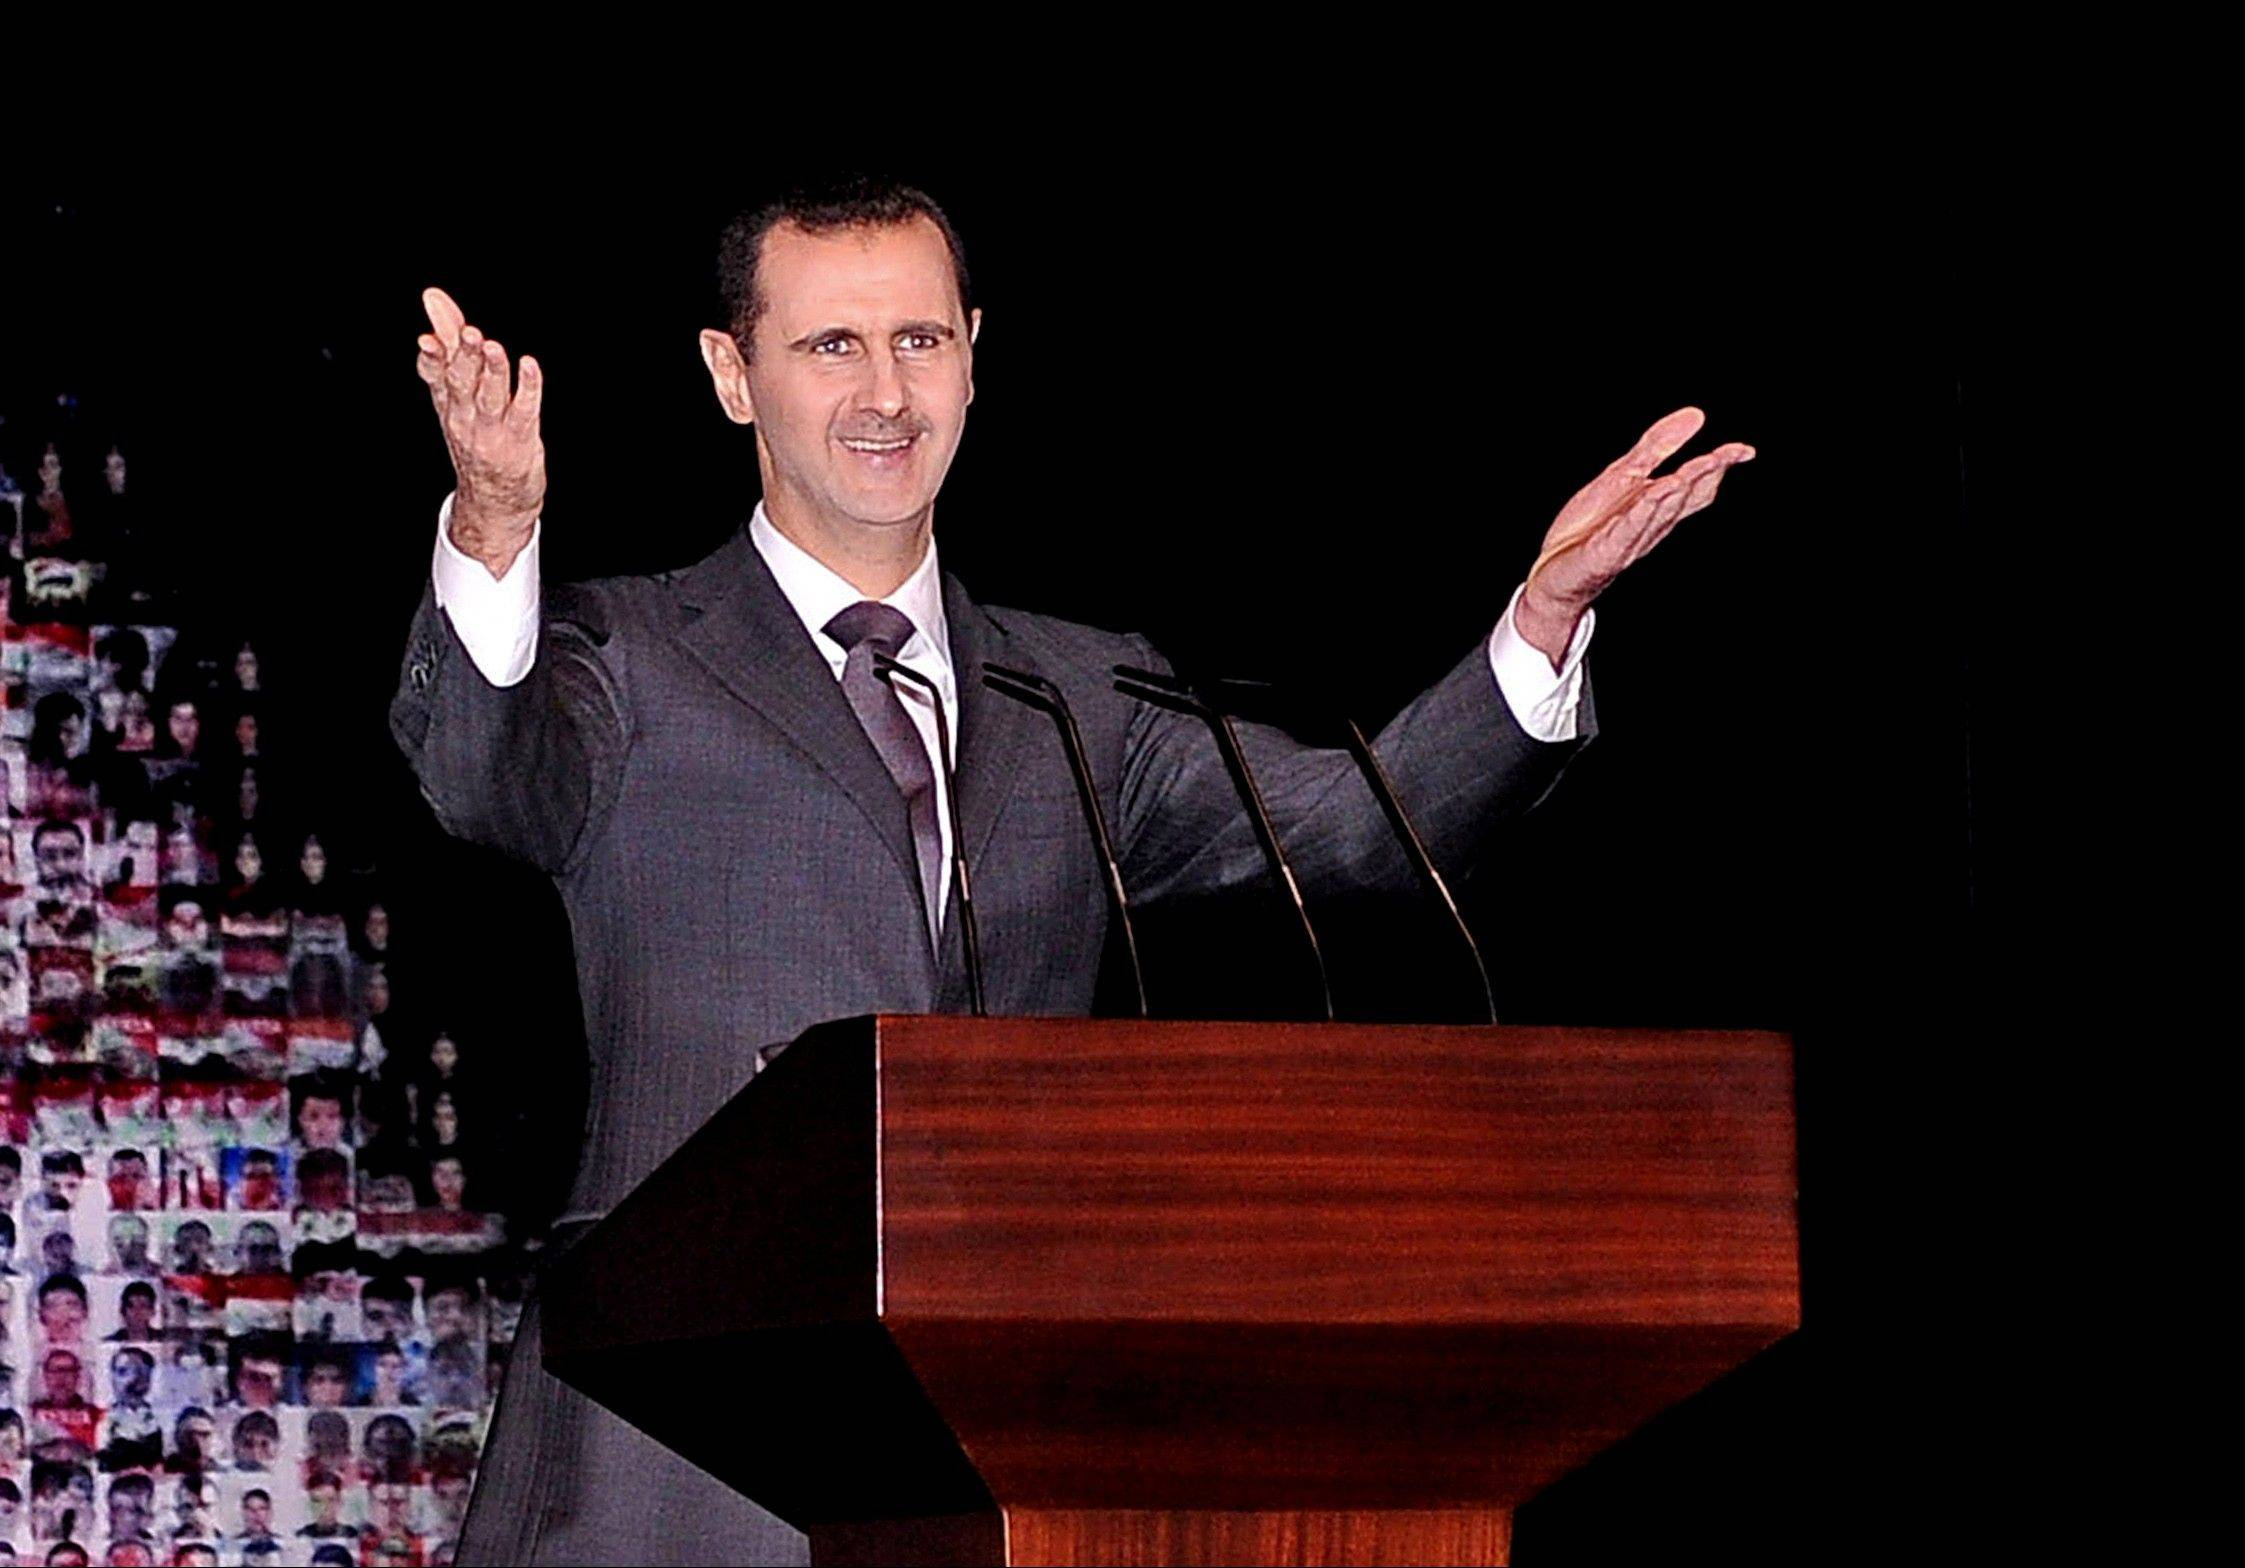 Associated Press/Jan. 6, 2013 Syrian President Bashar Assad speaks at the Opera House in central Damascus, Syria.